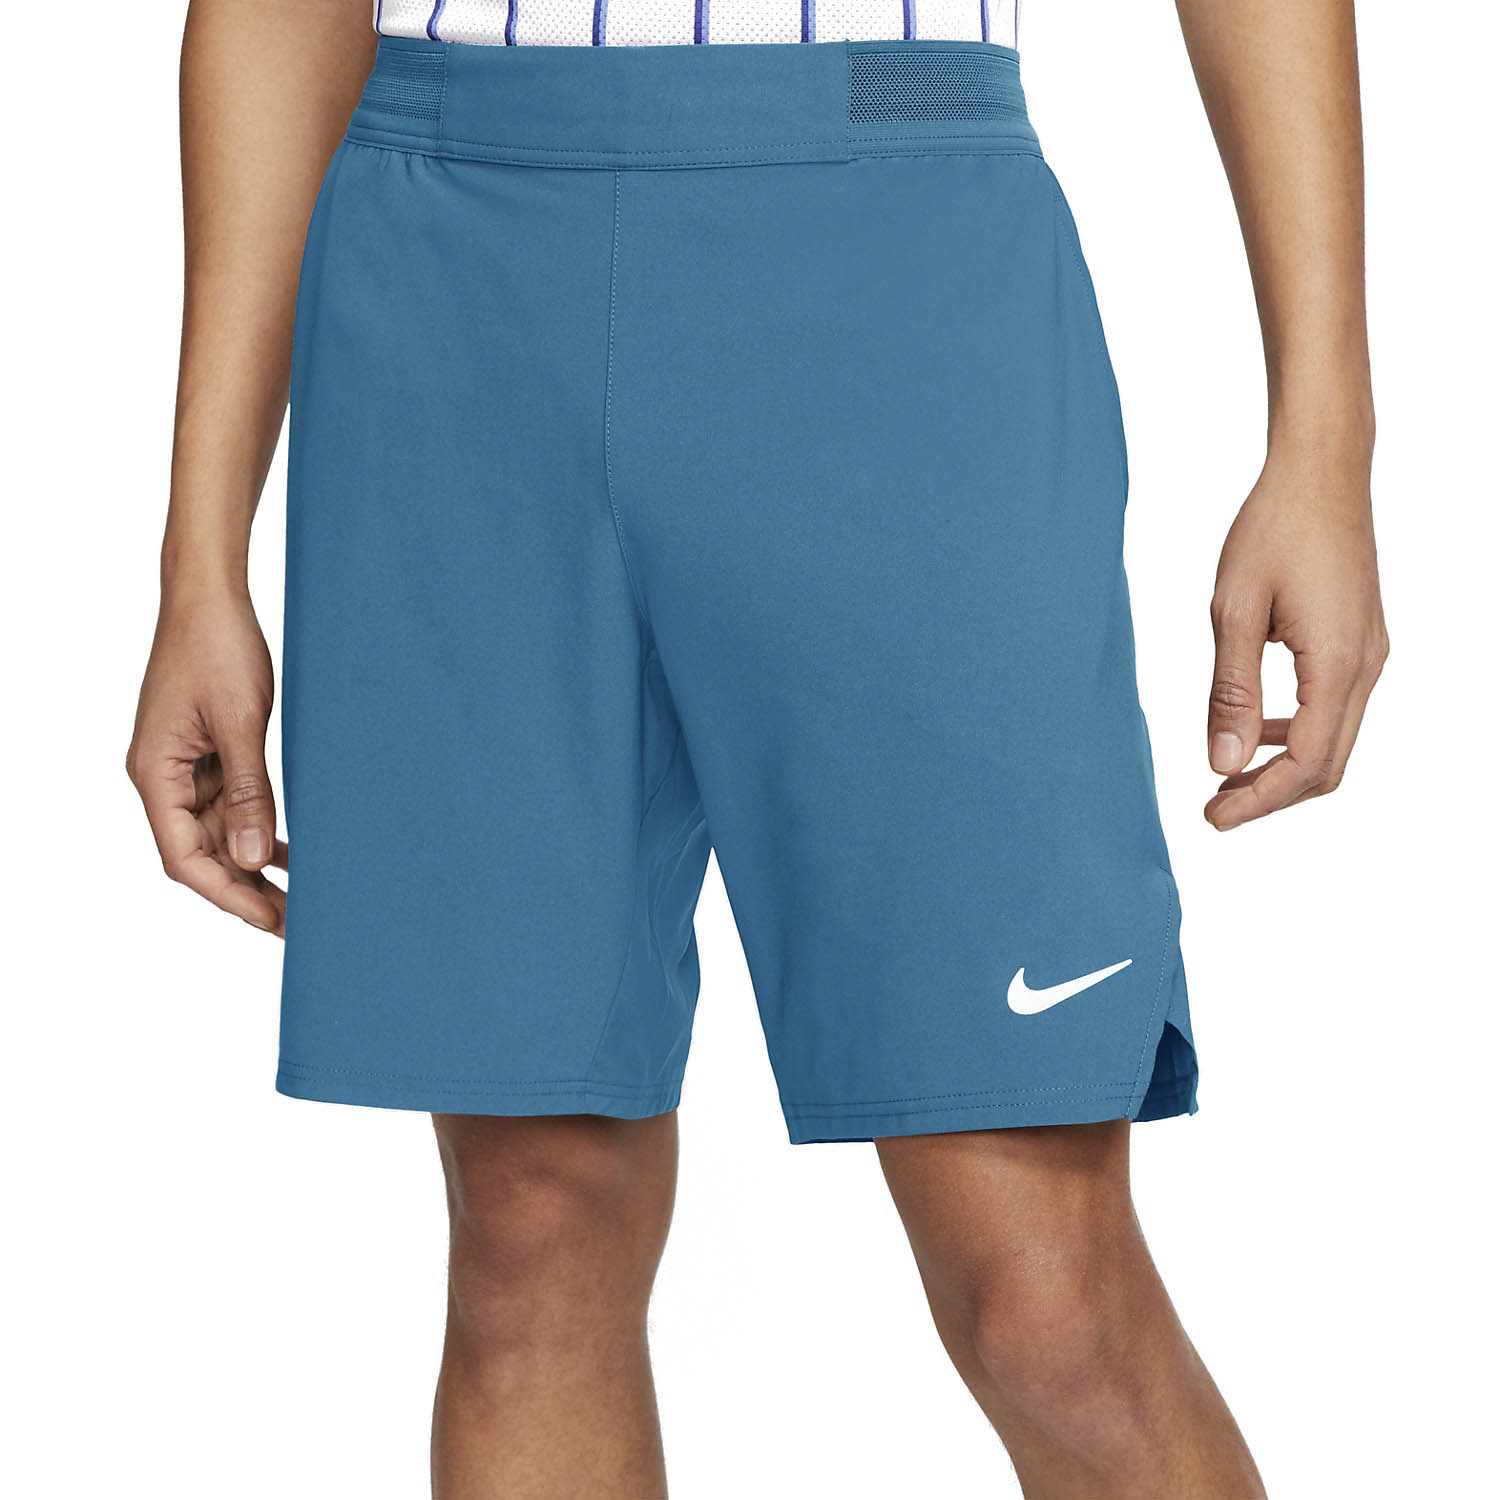 Nike Flex Ace 9in Shorts - Neo Turquoise/White